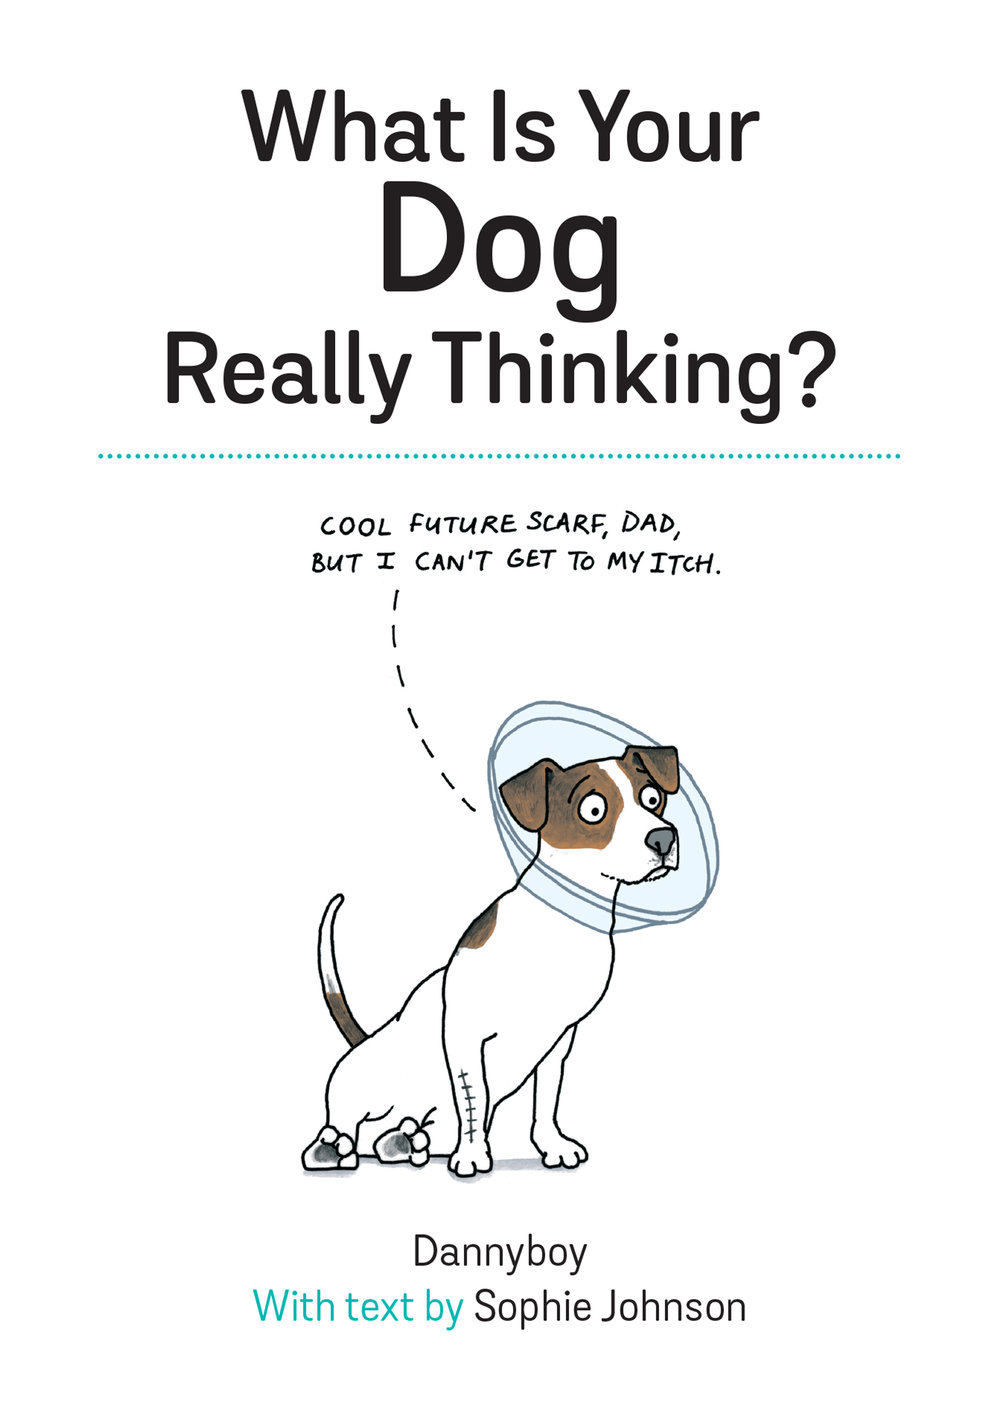 What is your Dog Really Thinking? (published by Summersdale)